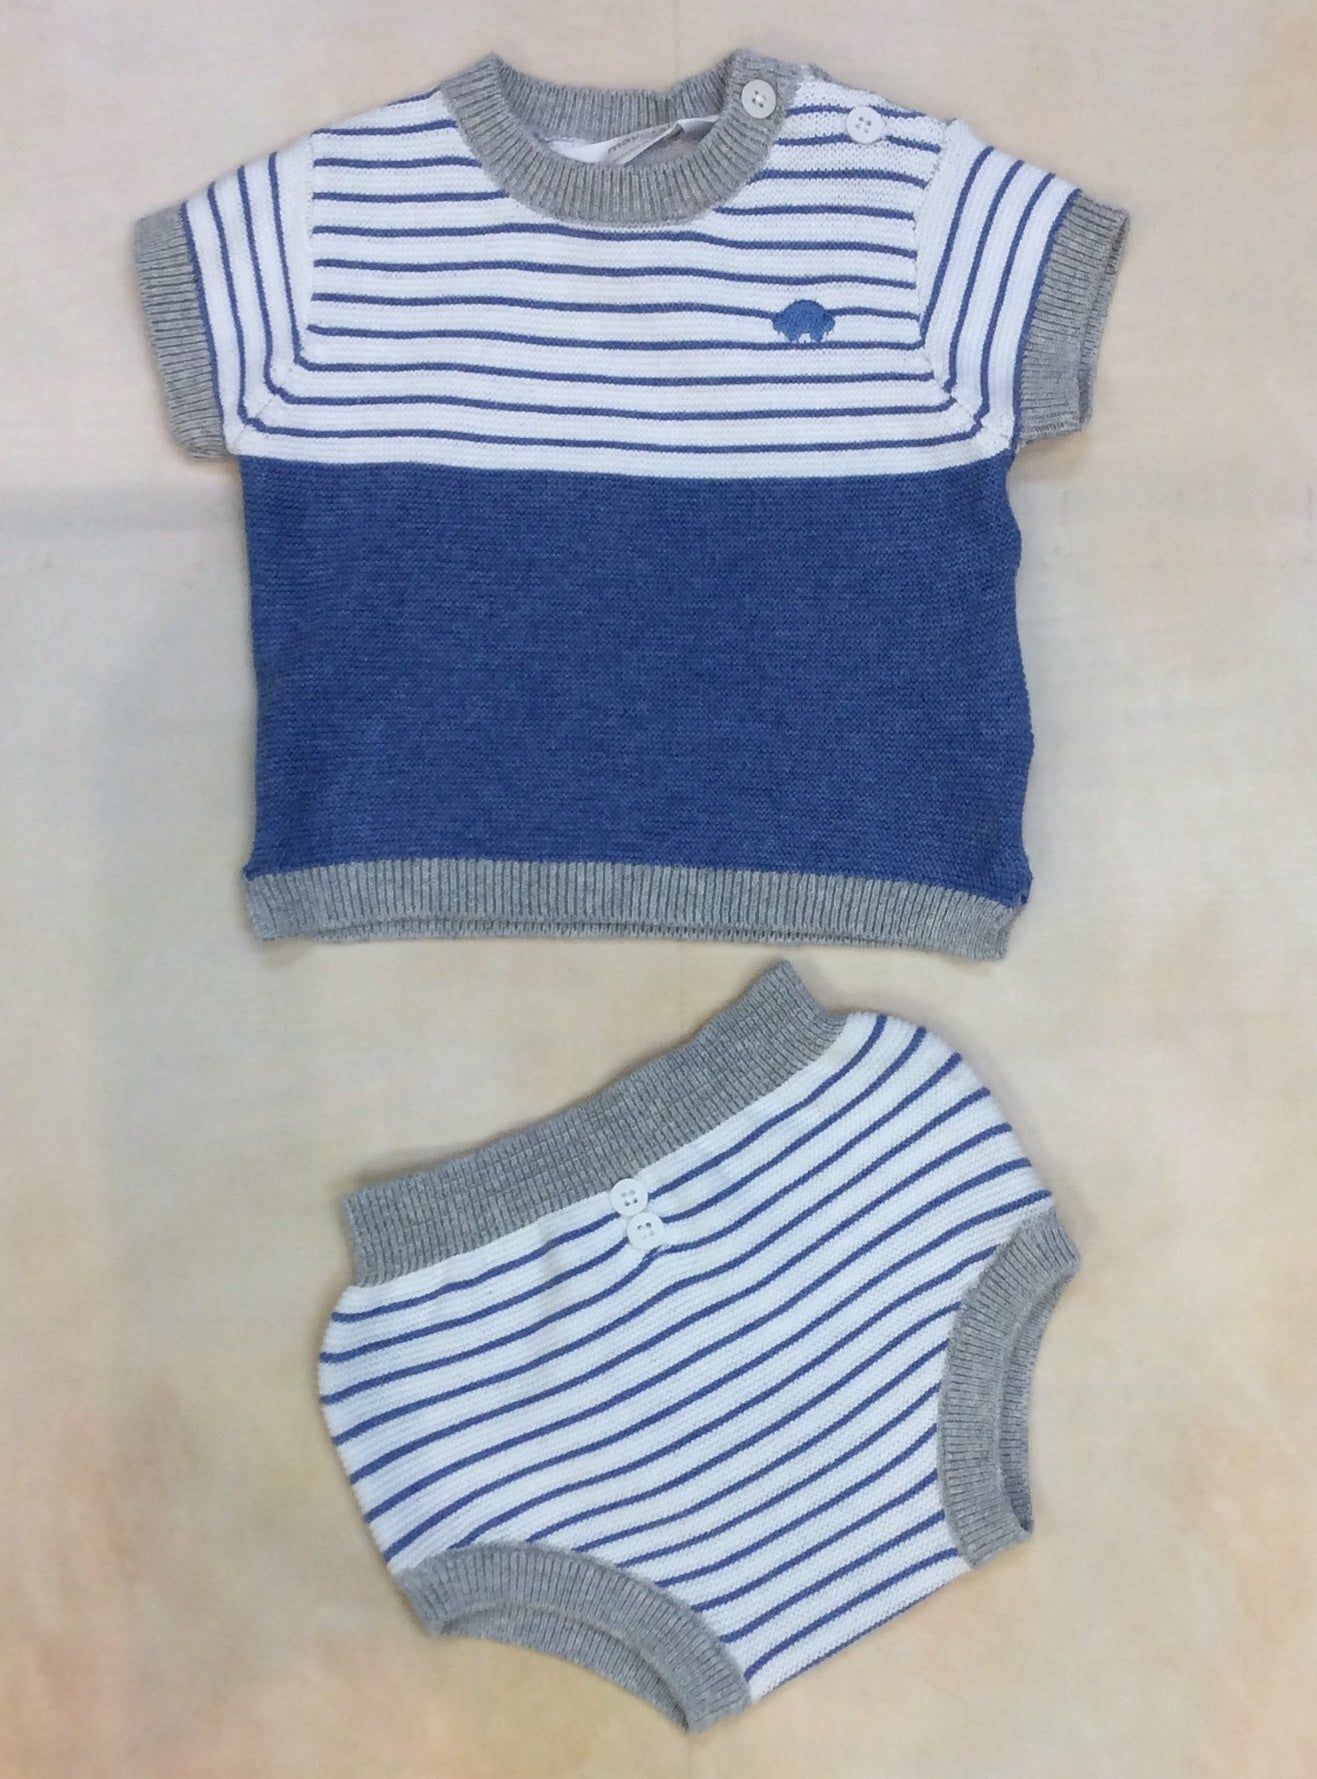 Baby Boy knit short set MY1258 - Nenes Lullaby Boutique Inc